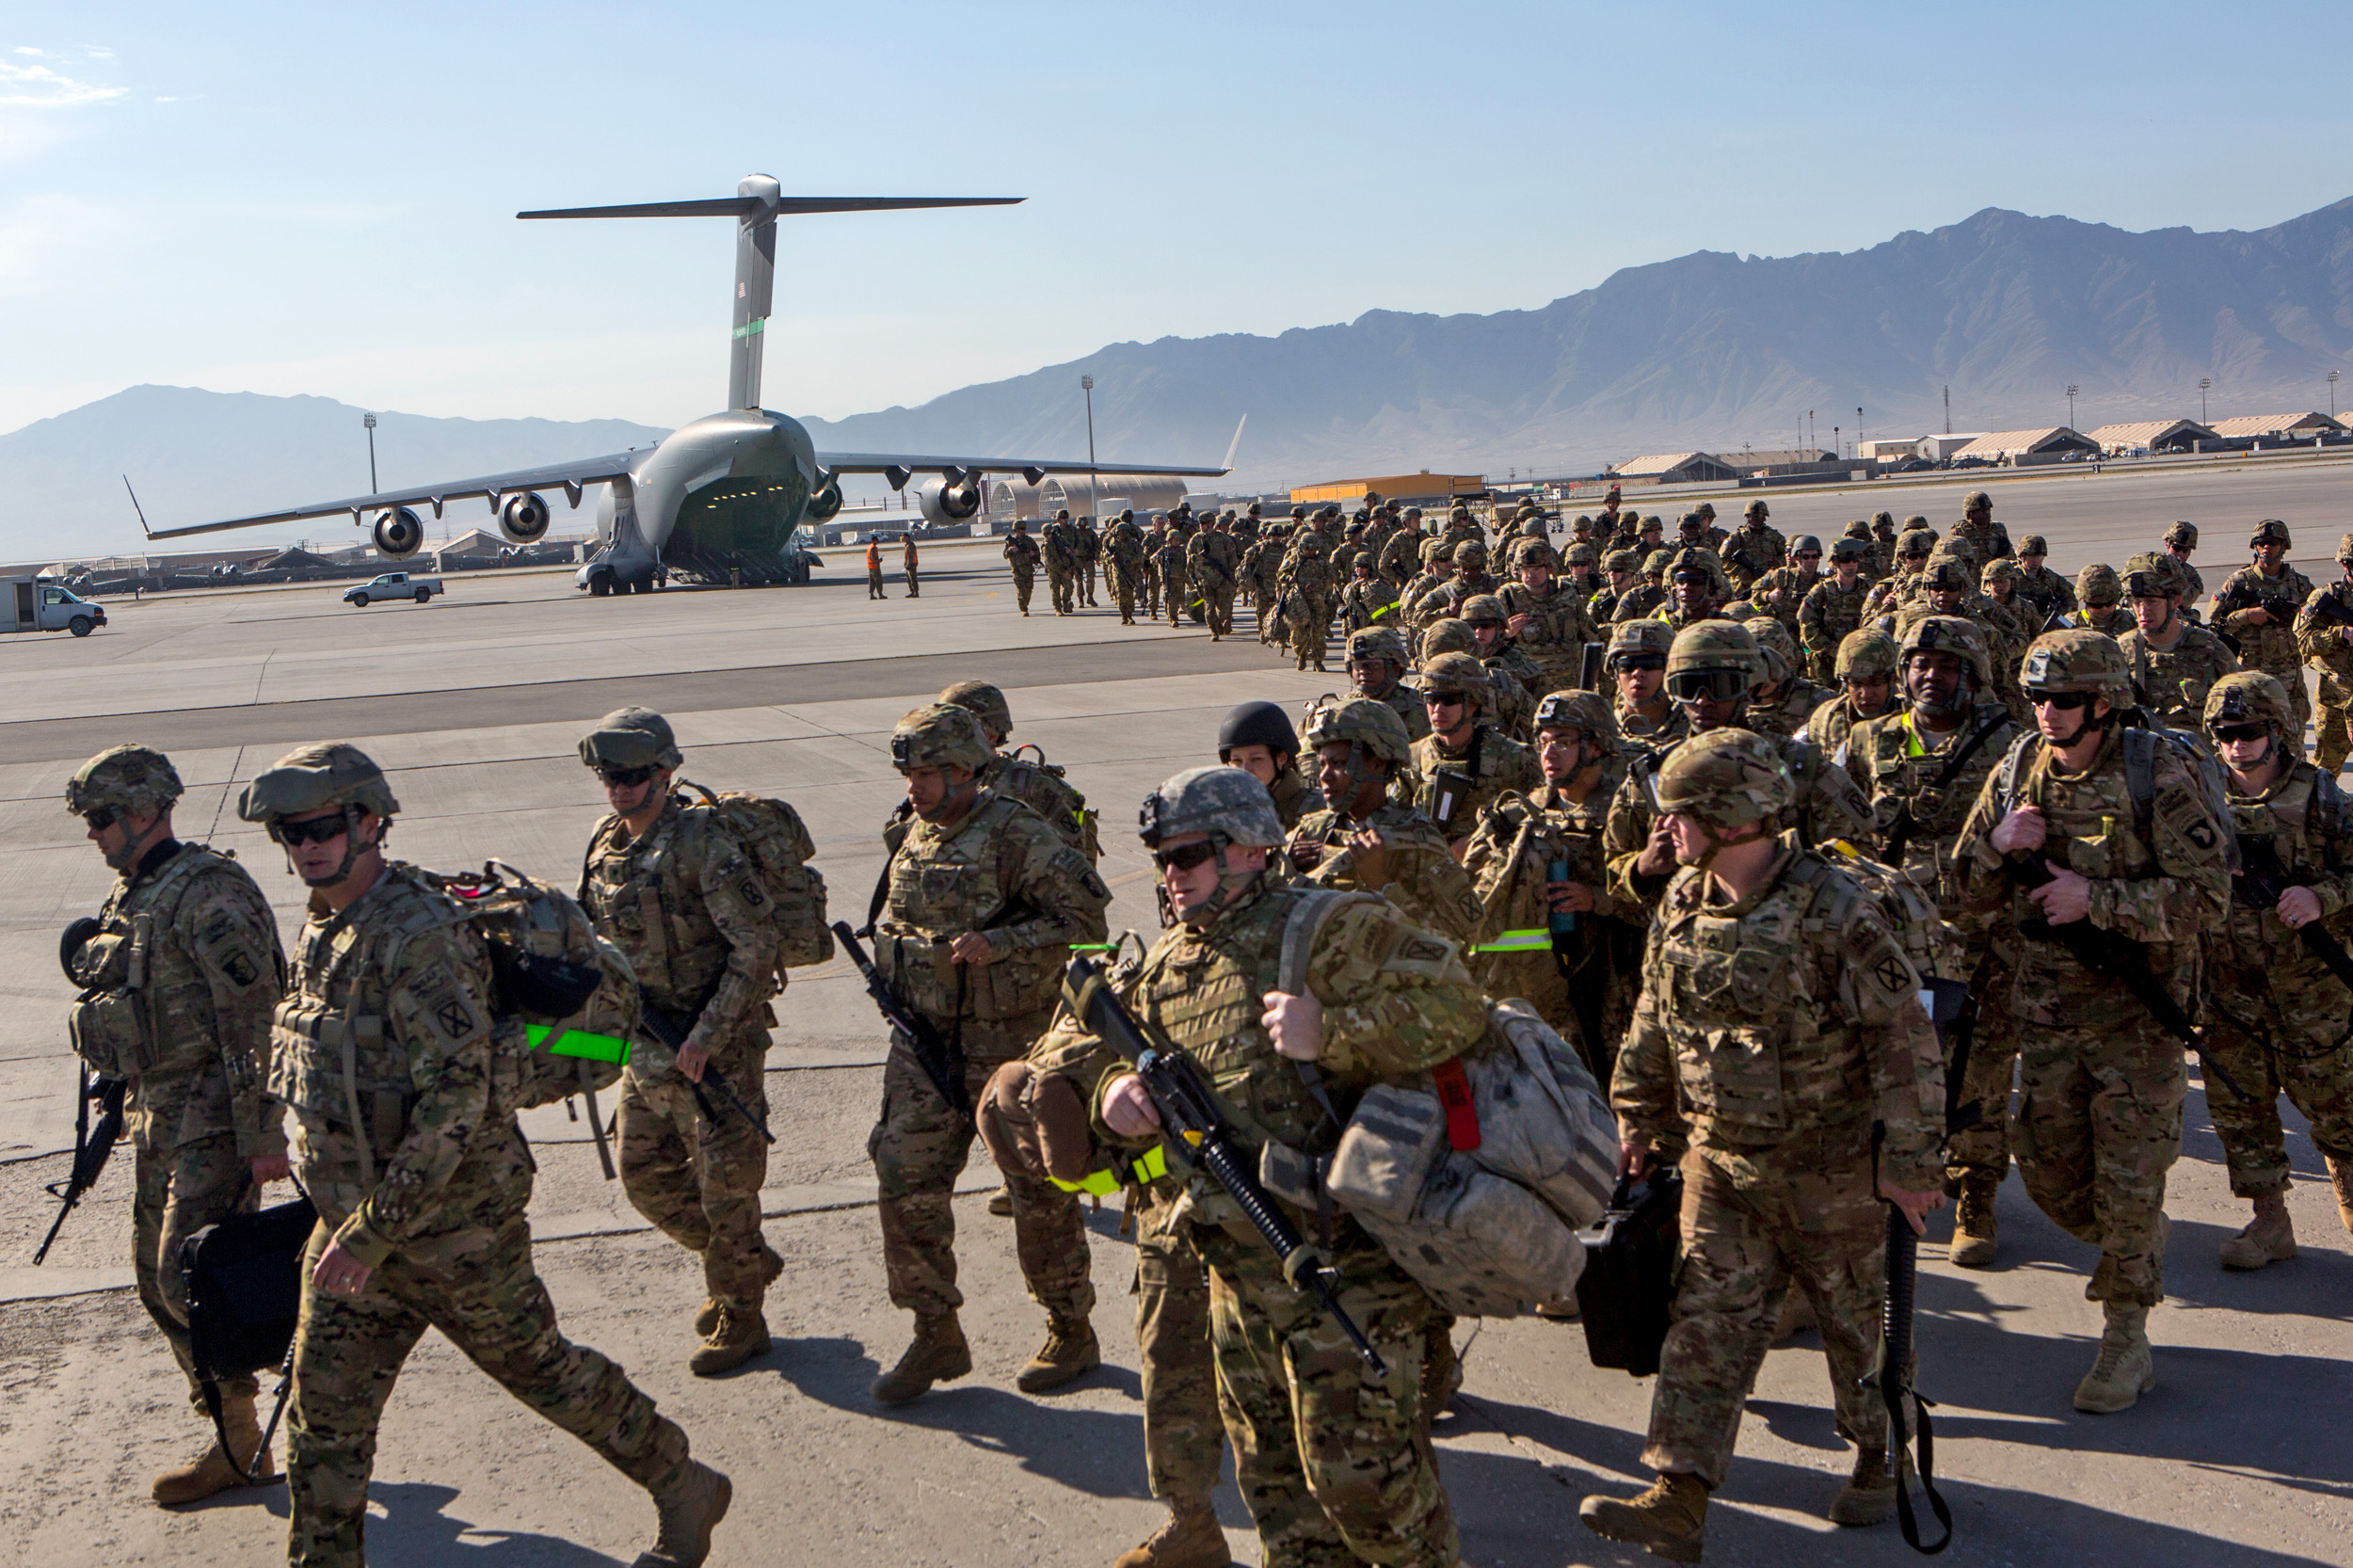 Biden authorizes 5,000 troops for Afghanistan